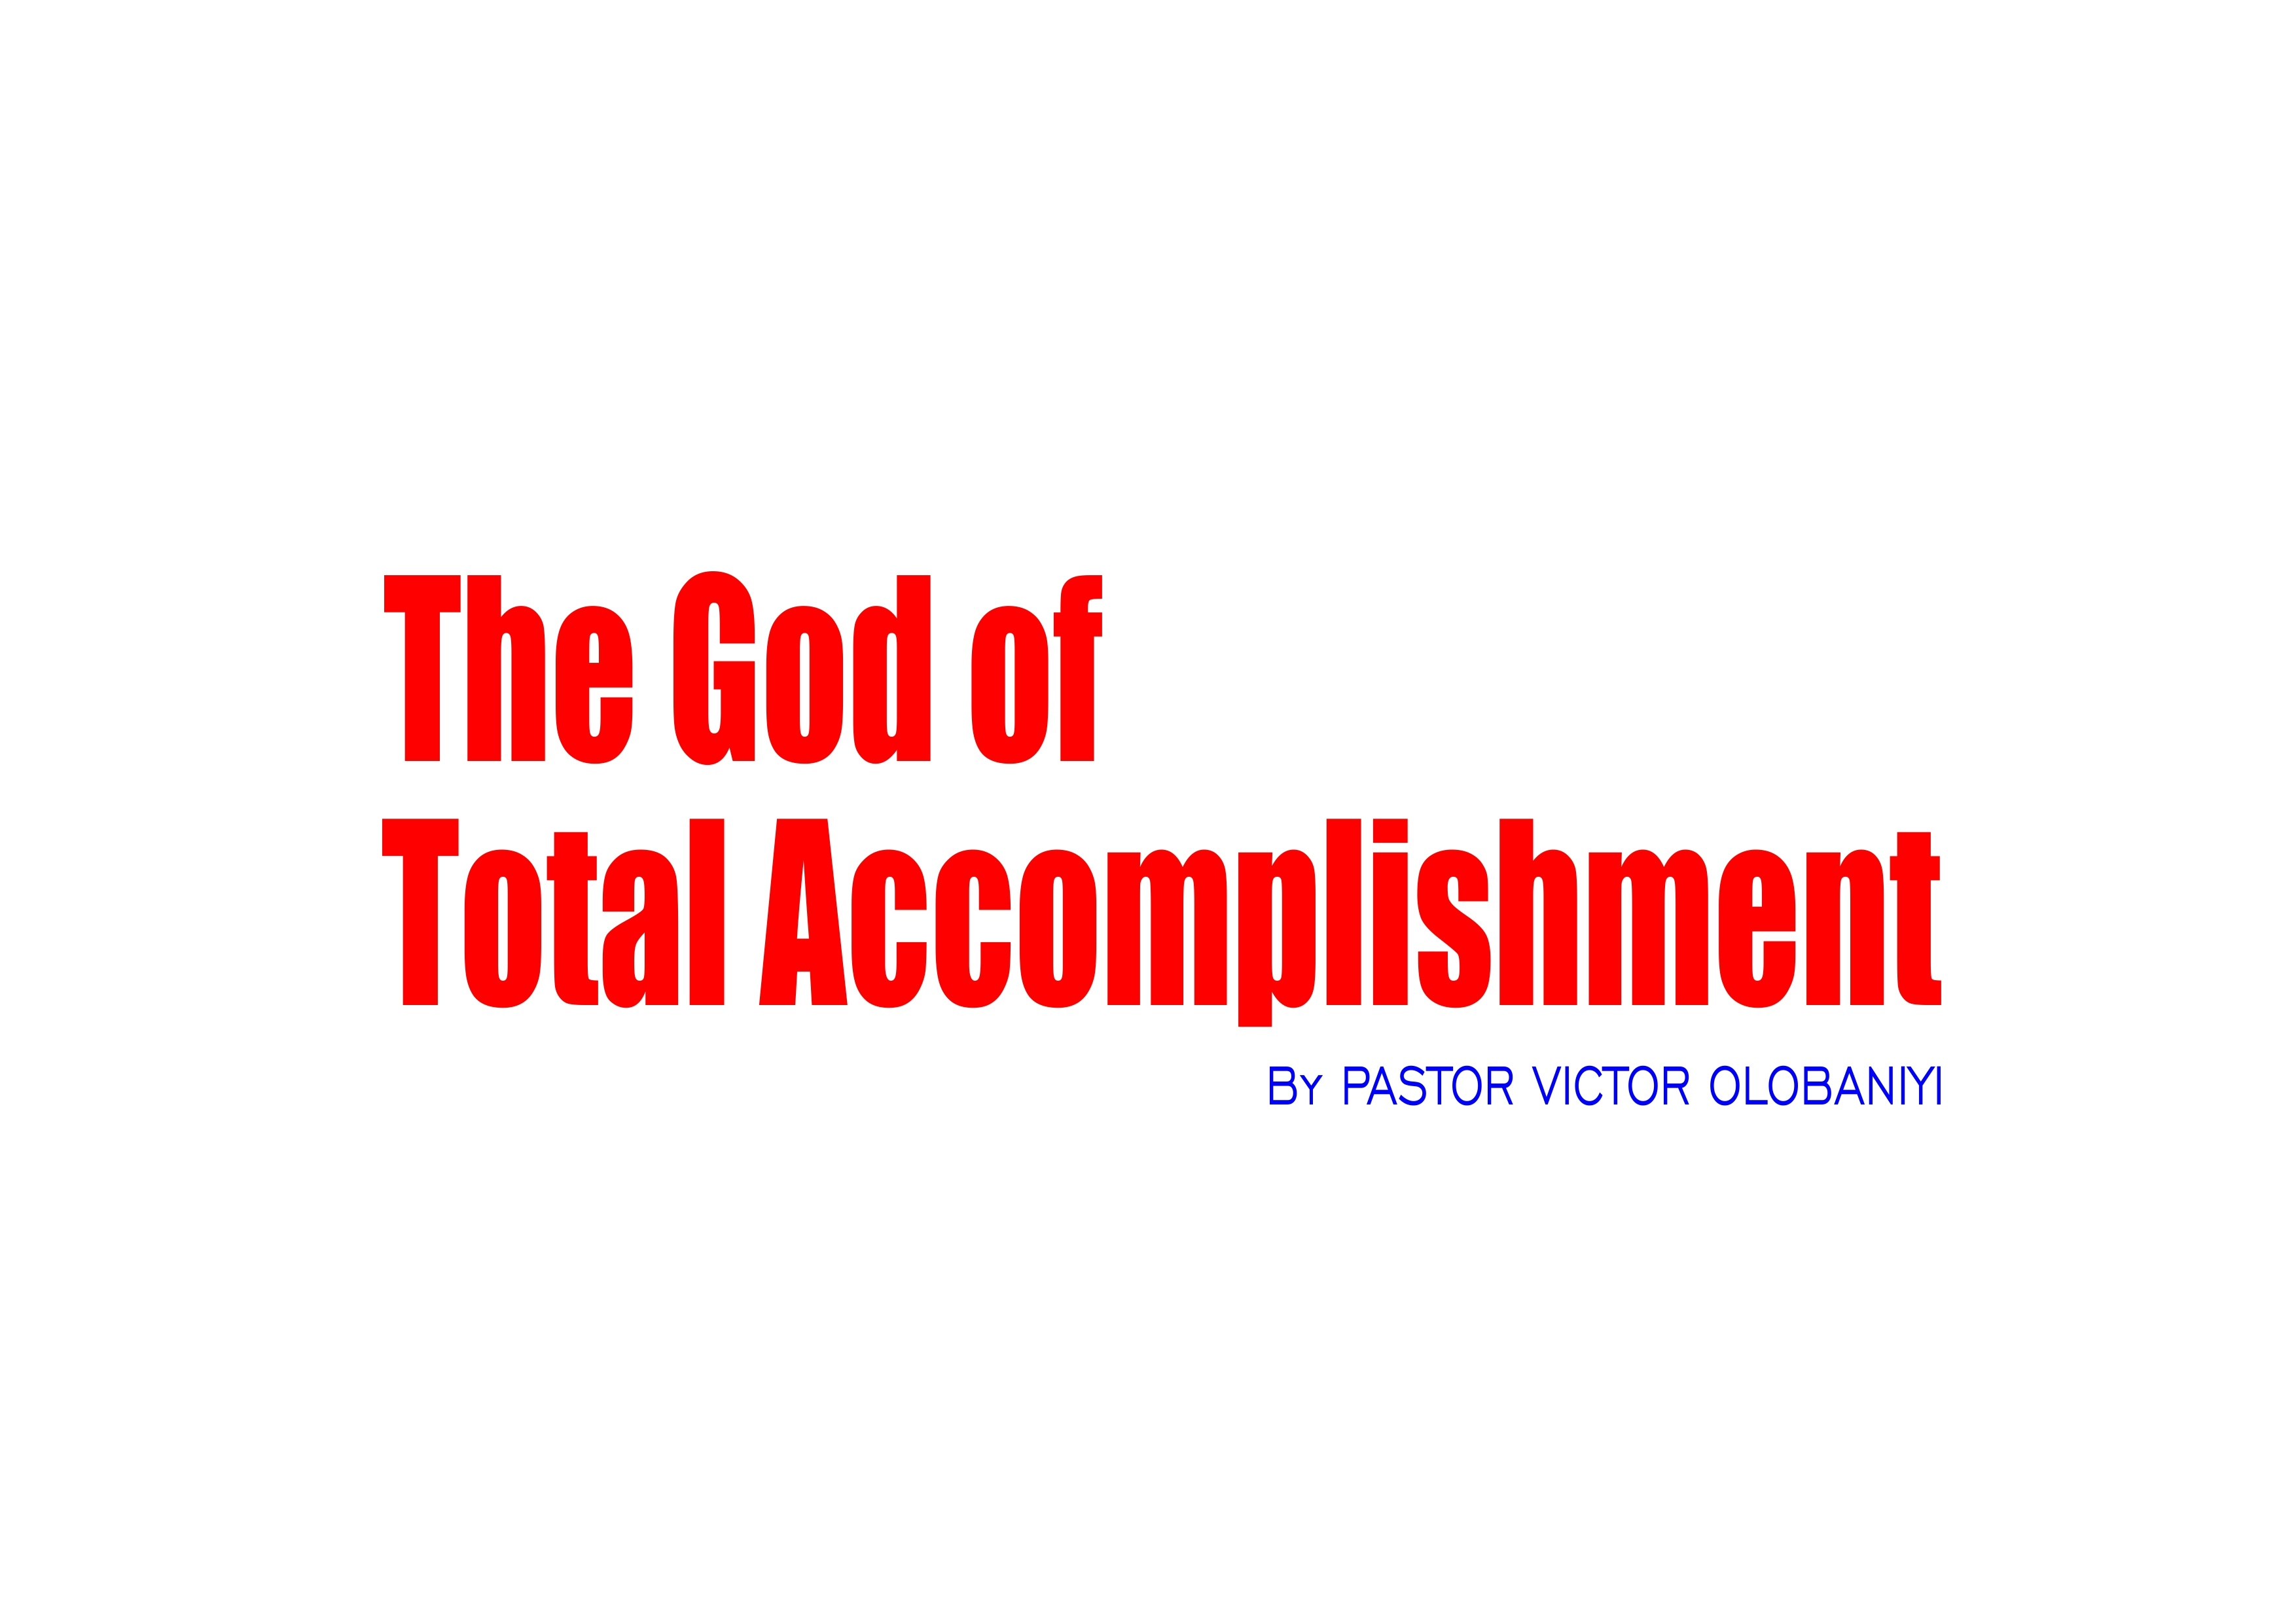 The God of Total Accomplishment, by Pastor Victor Olobaniyi